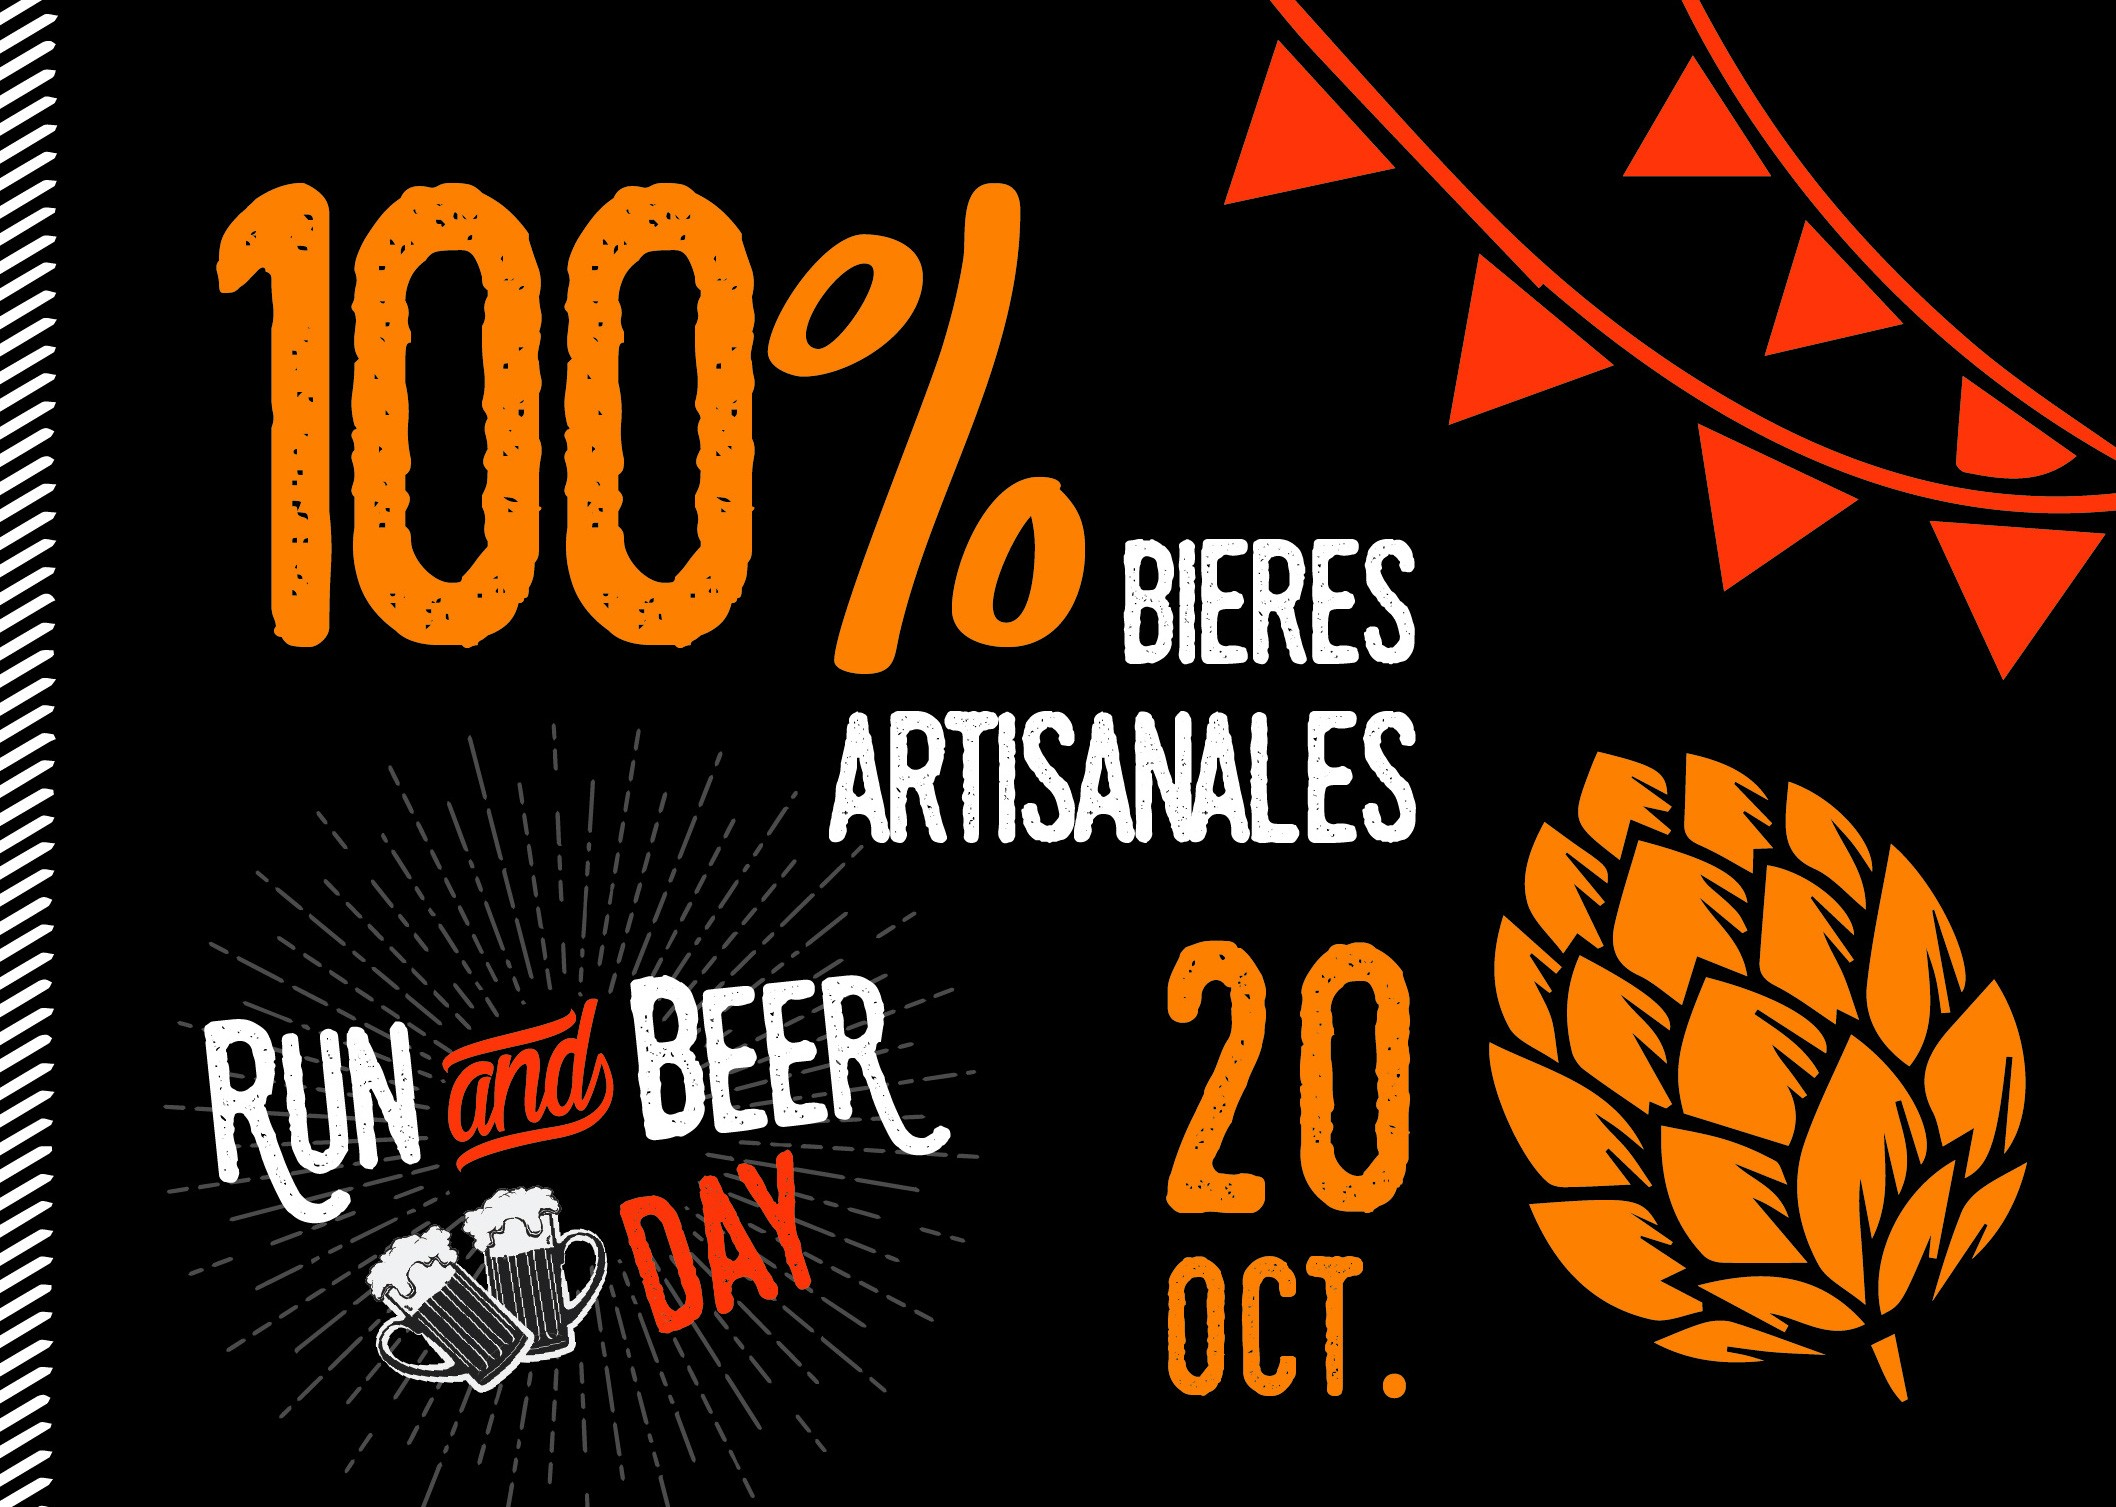 100% bieres artisanales run and beer day-01.jpg